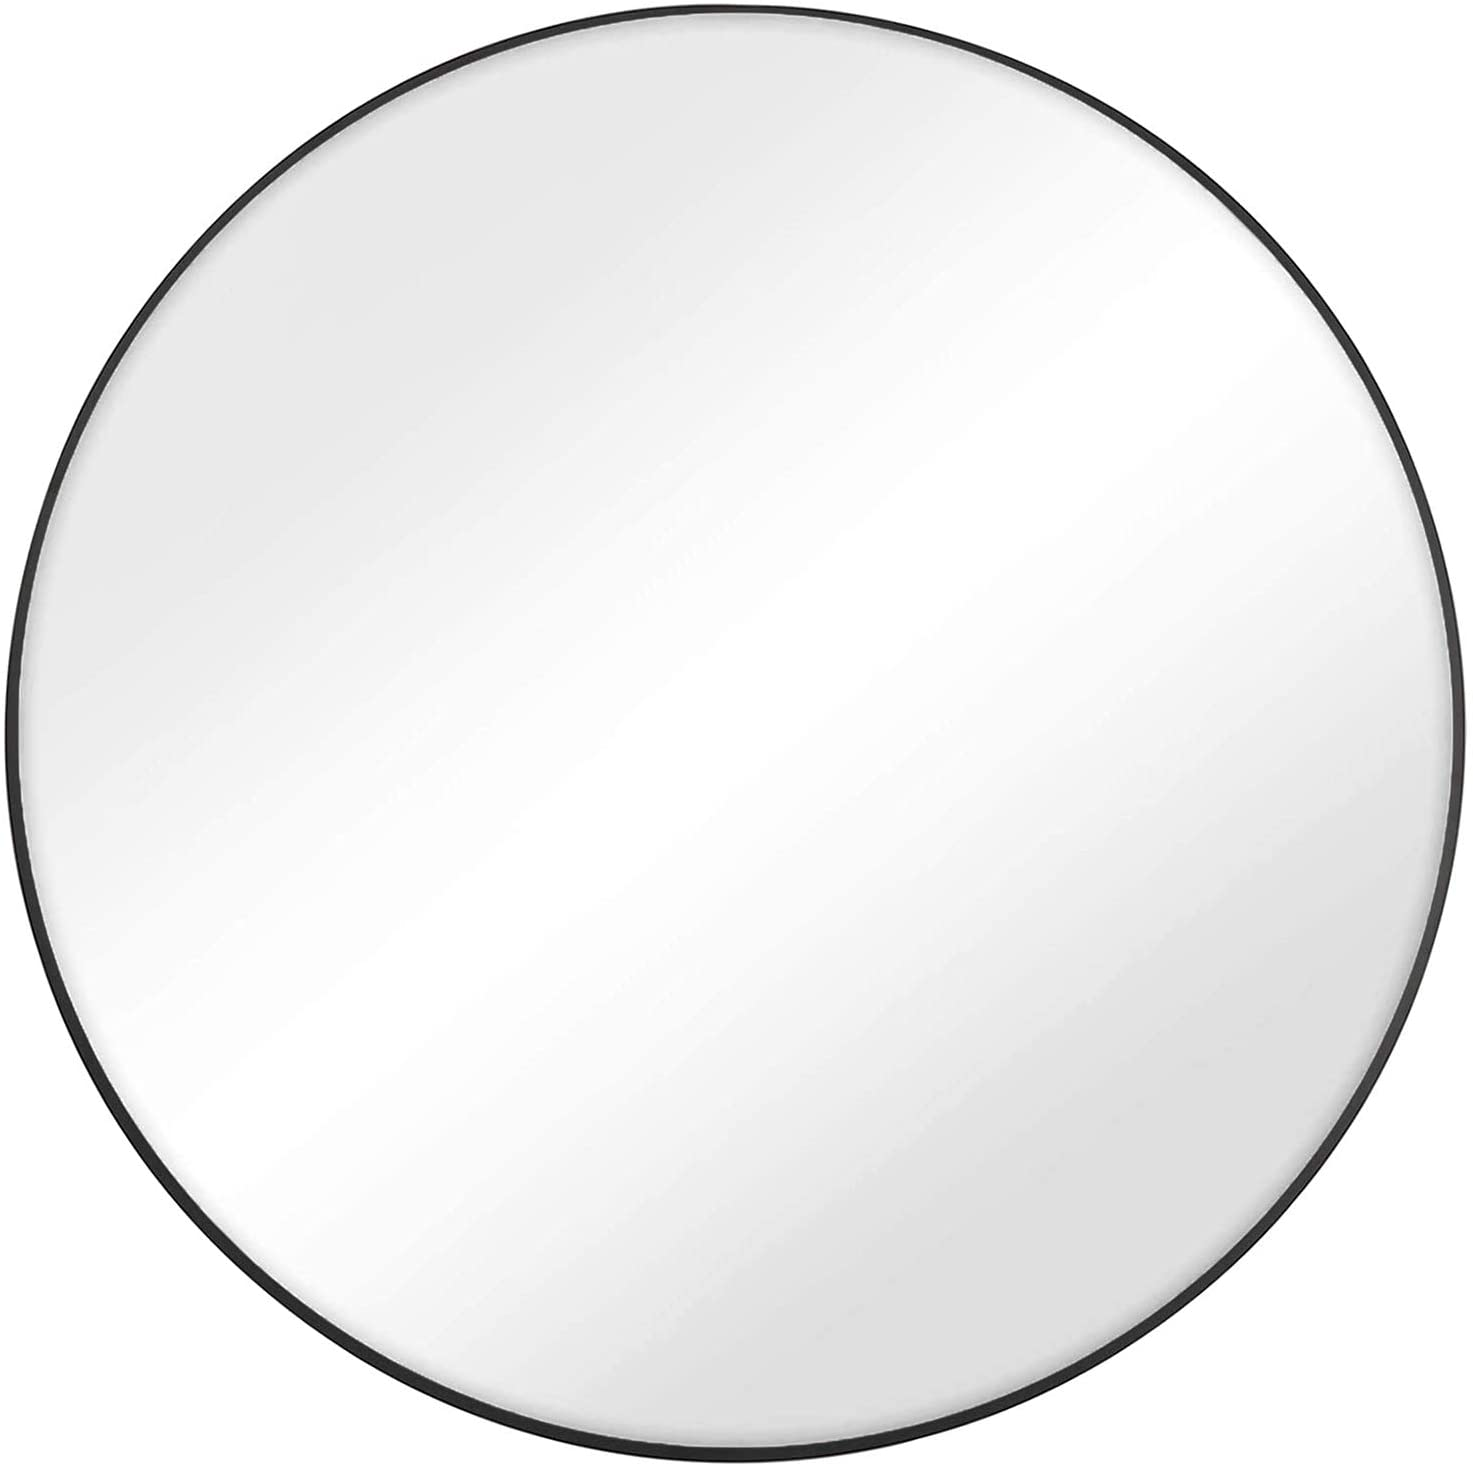 Special price SONGMICS Round Wall Mirror Circle Di All items free shipping Decorative 30-Inch